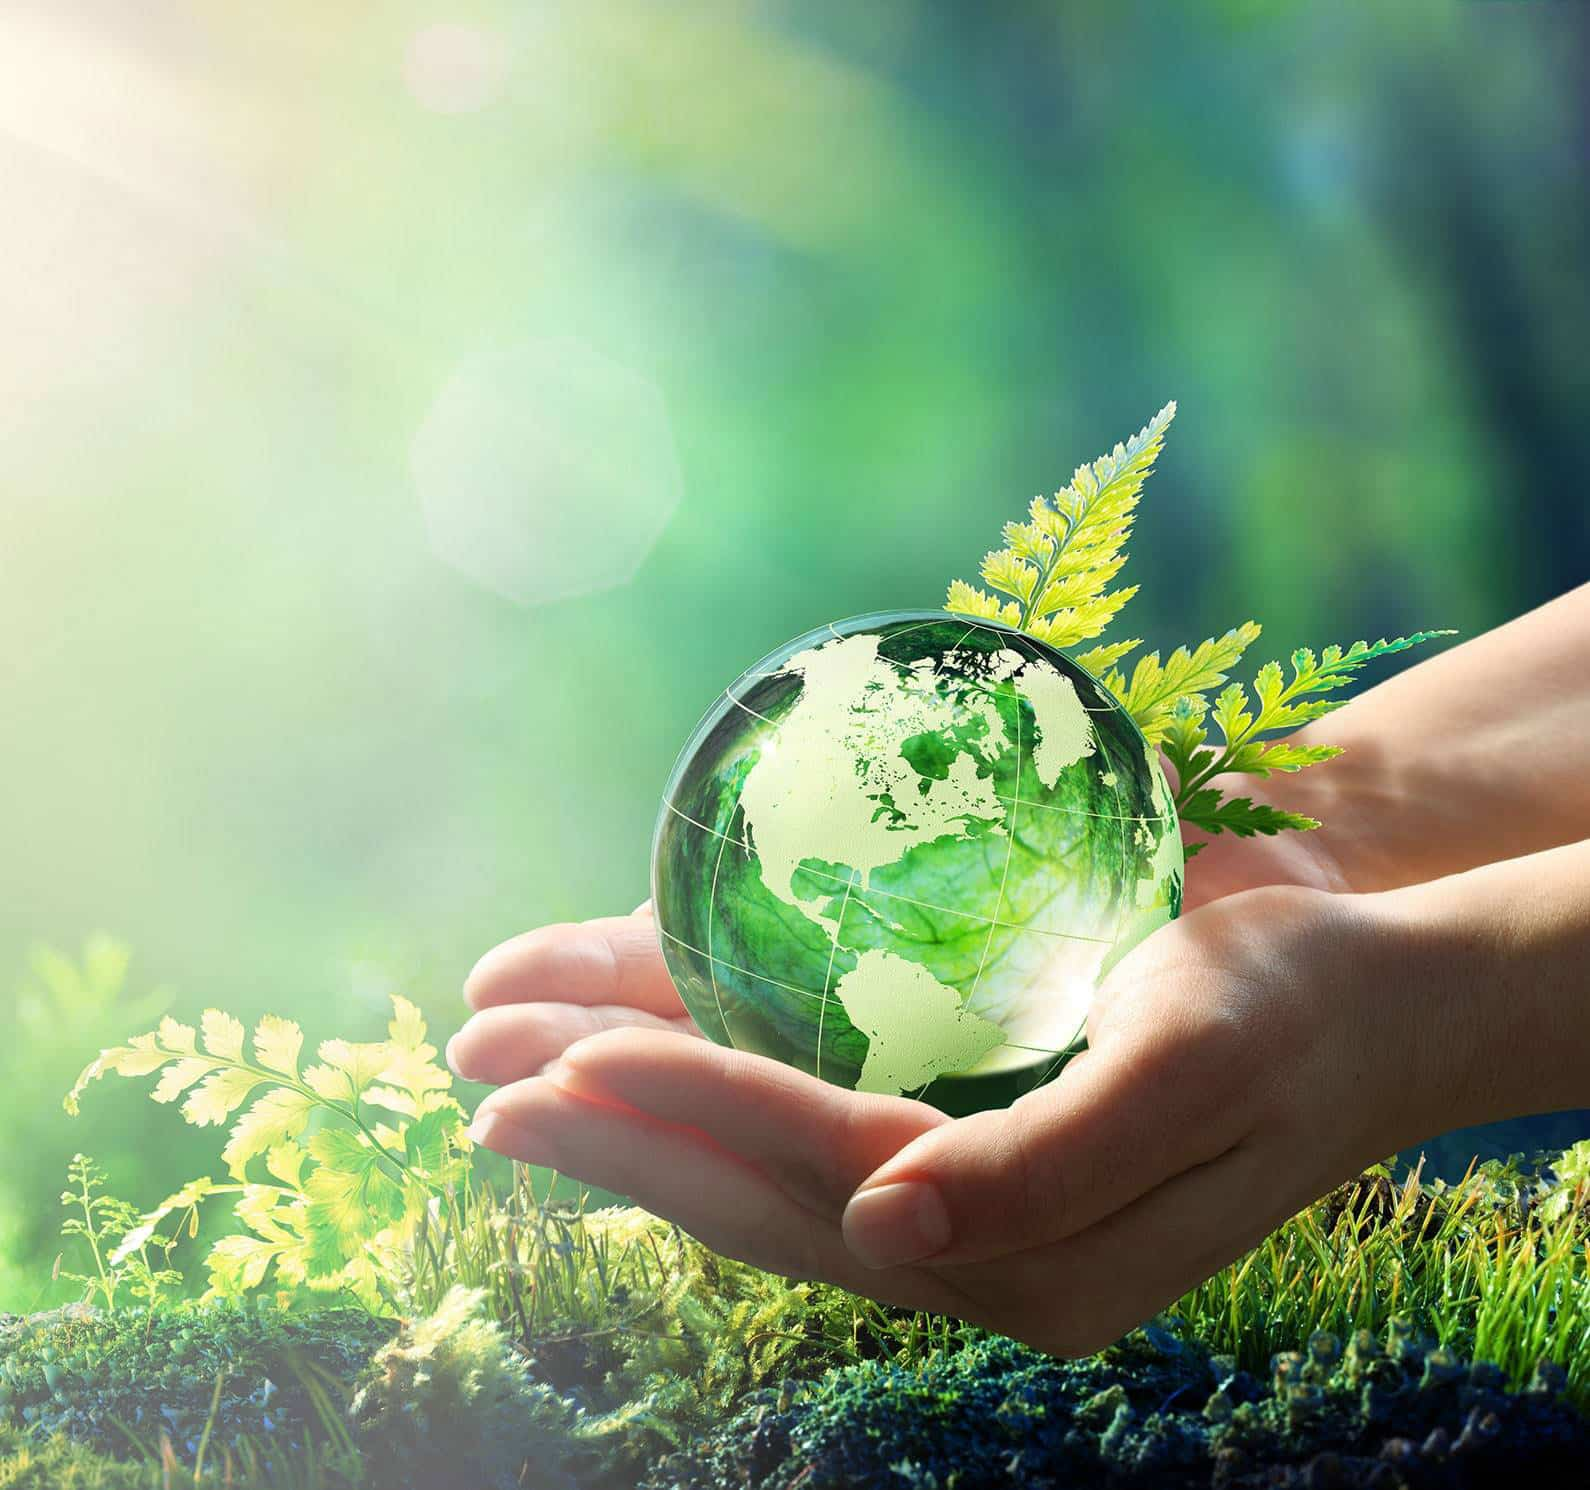 Generating Wealth Through Sustainable Resources